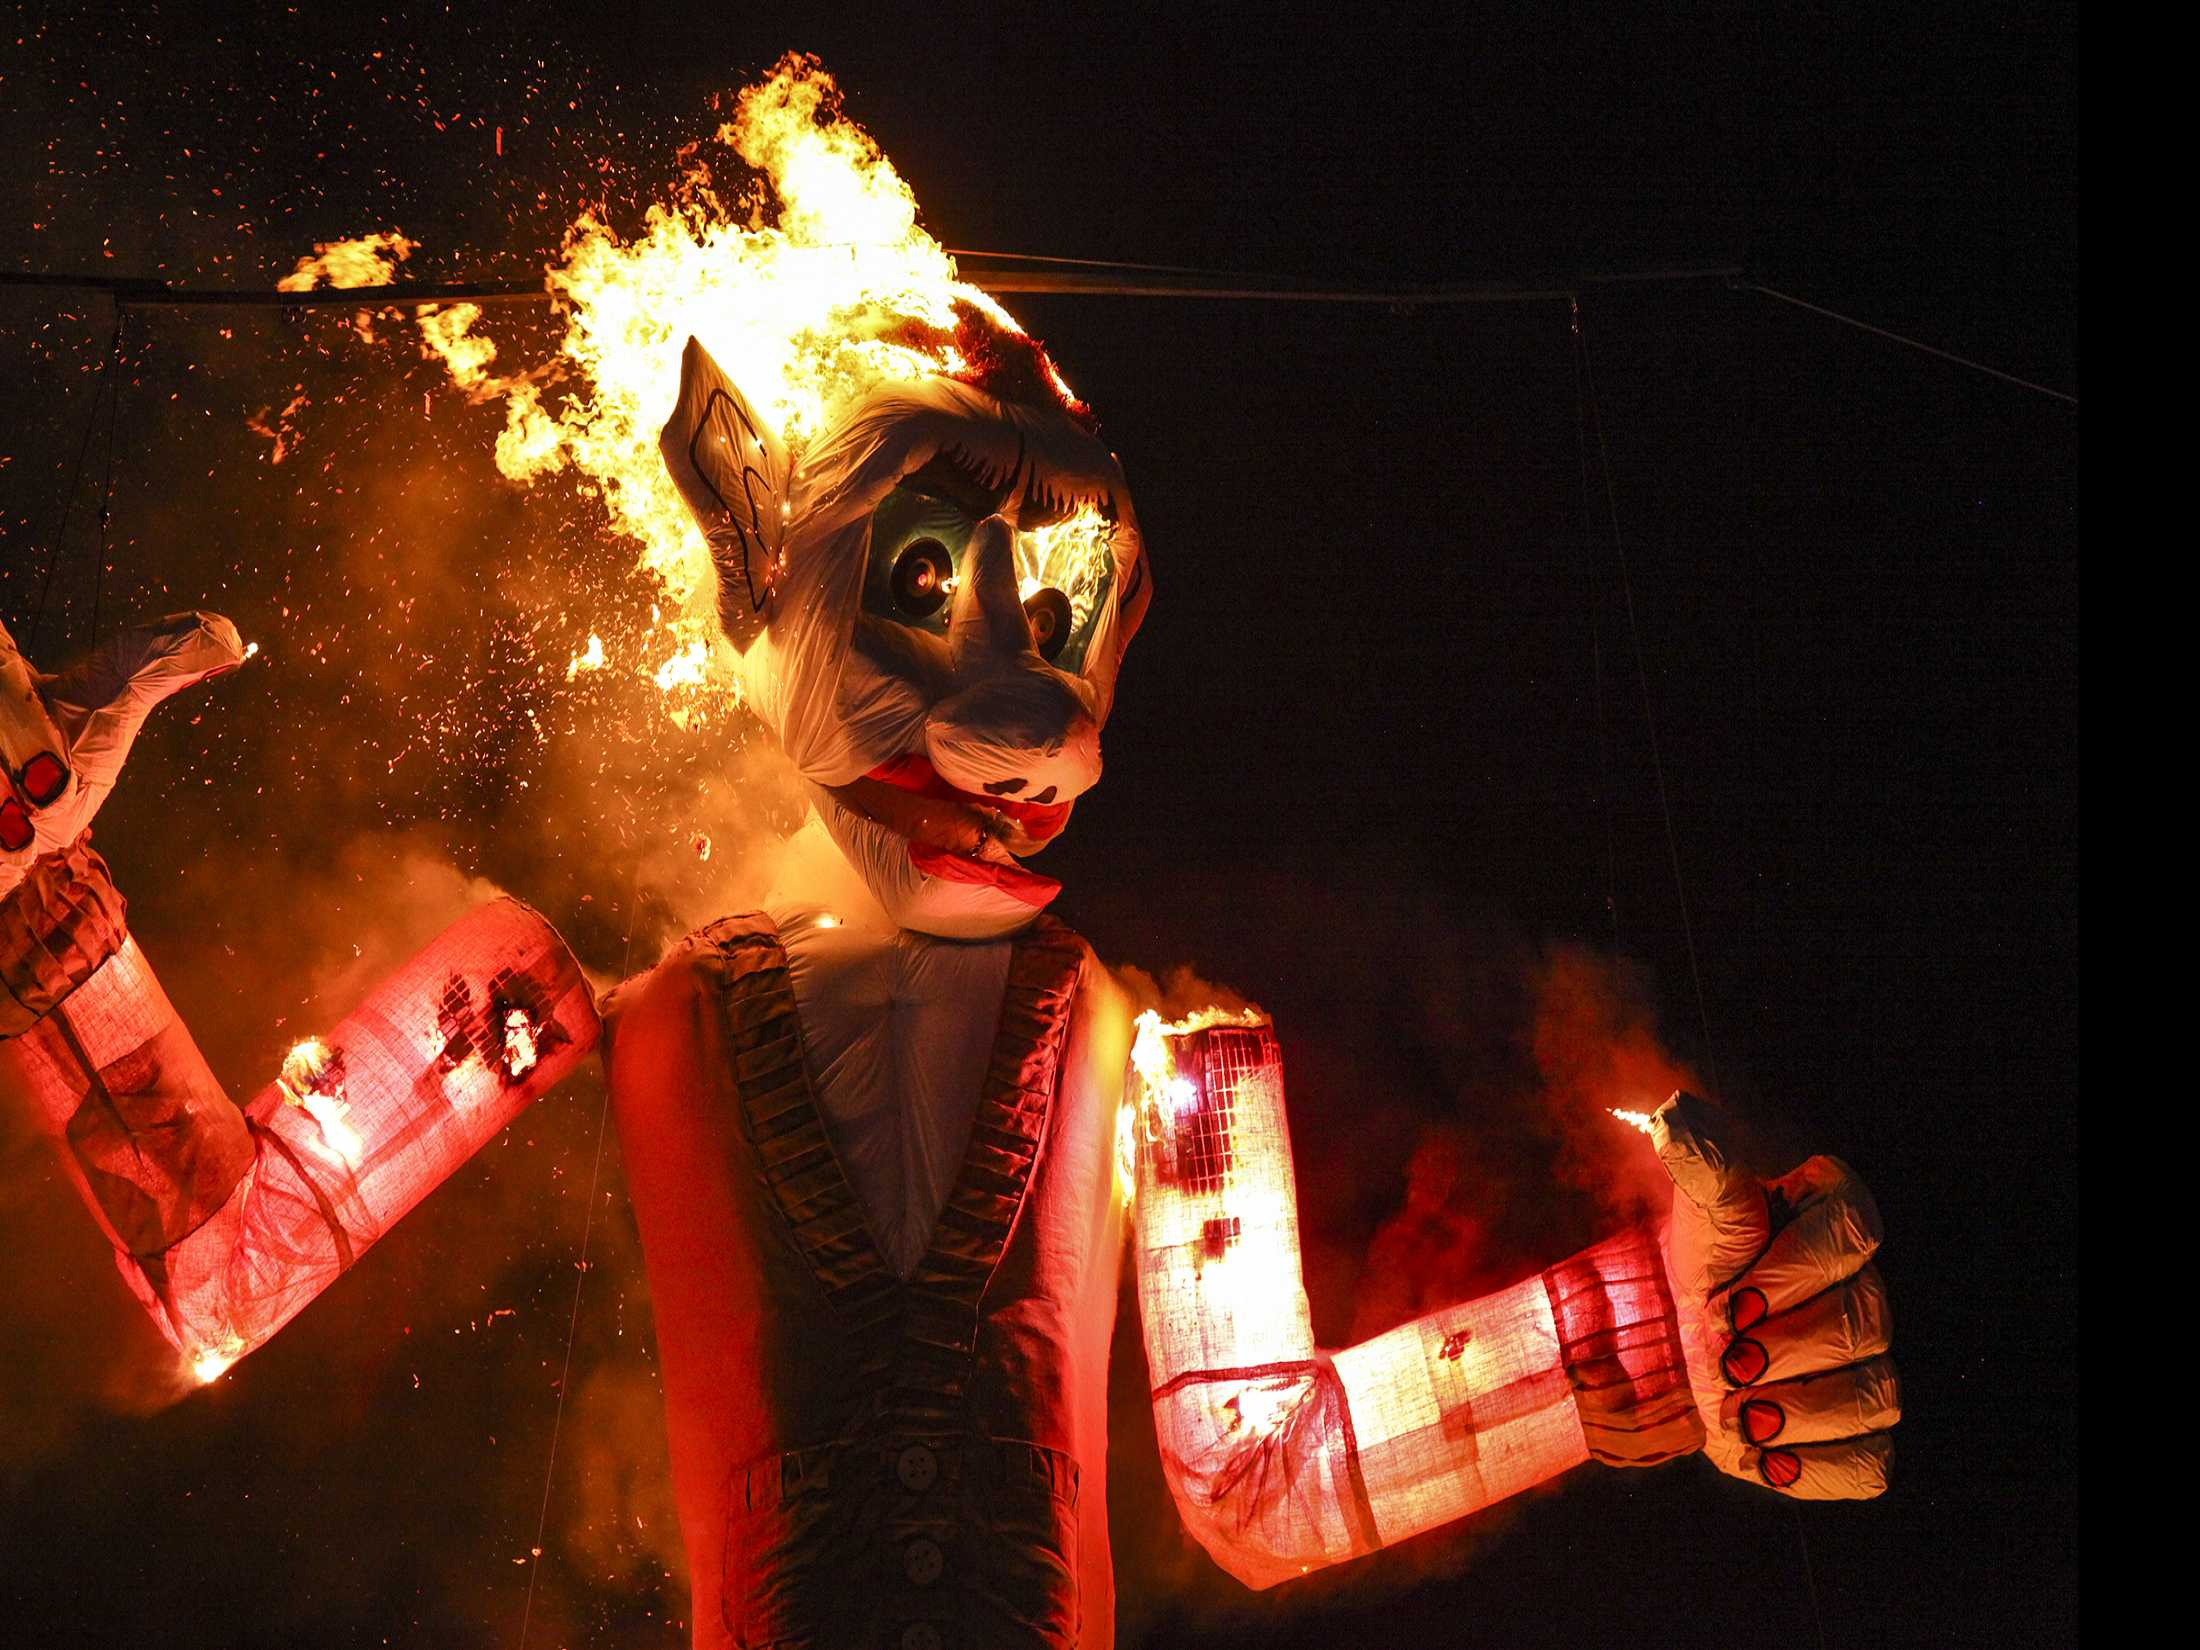 Flames Lick Up People's Fears in Ritual Effigy Burning